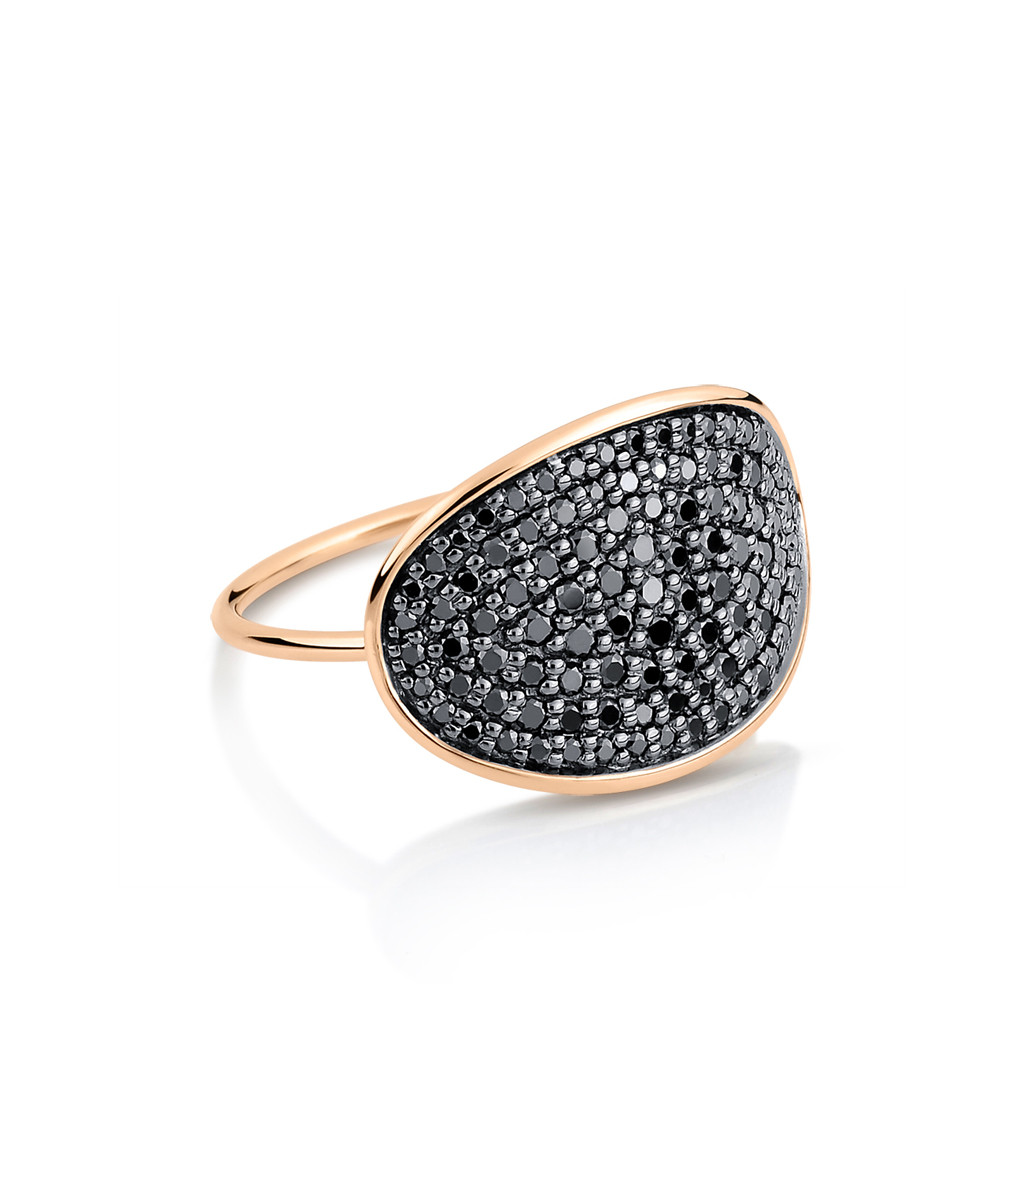 GINETTE_NY - Bague Sequin Large Or Rose Diamants Noirs